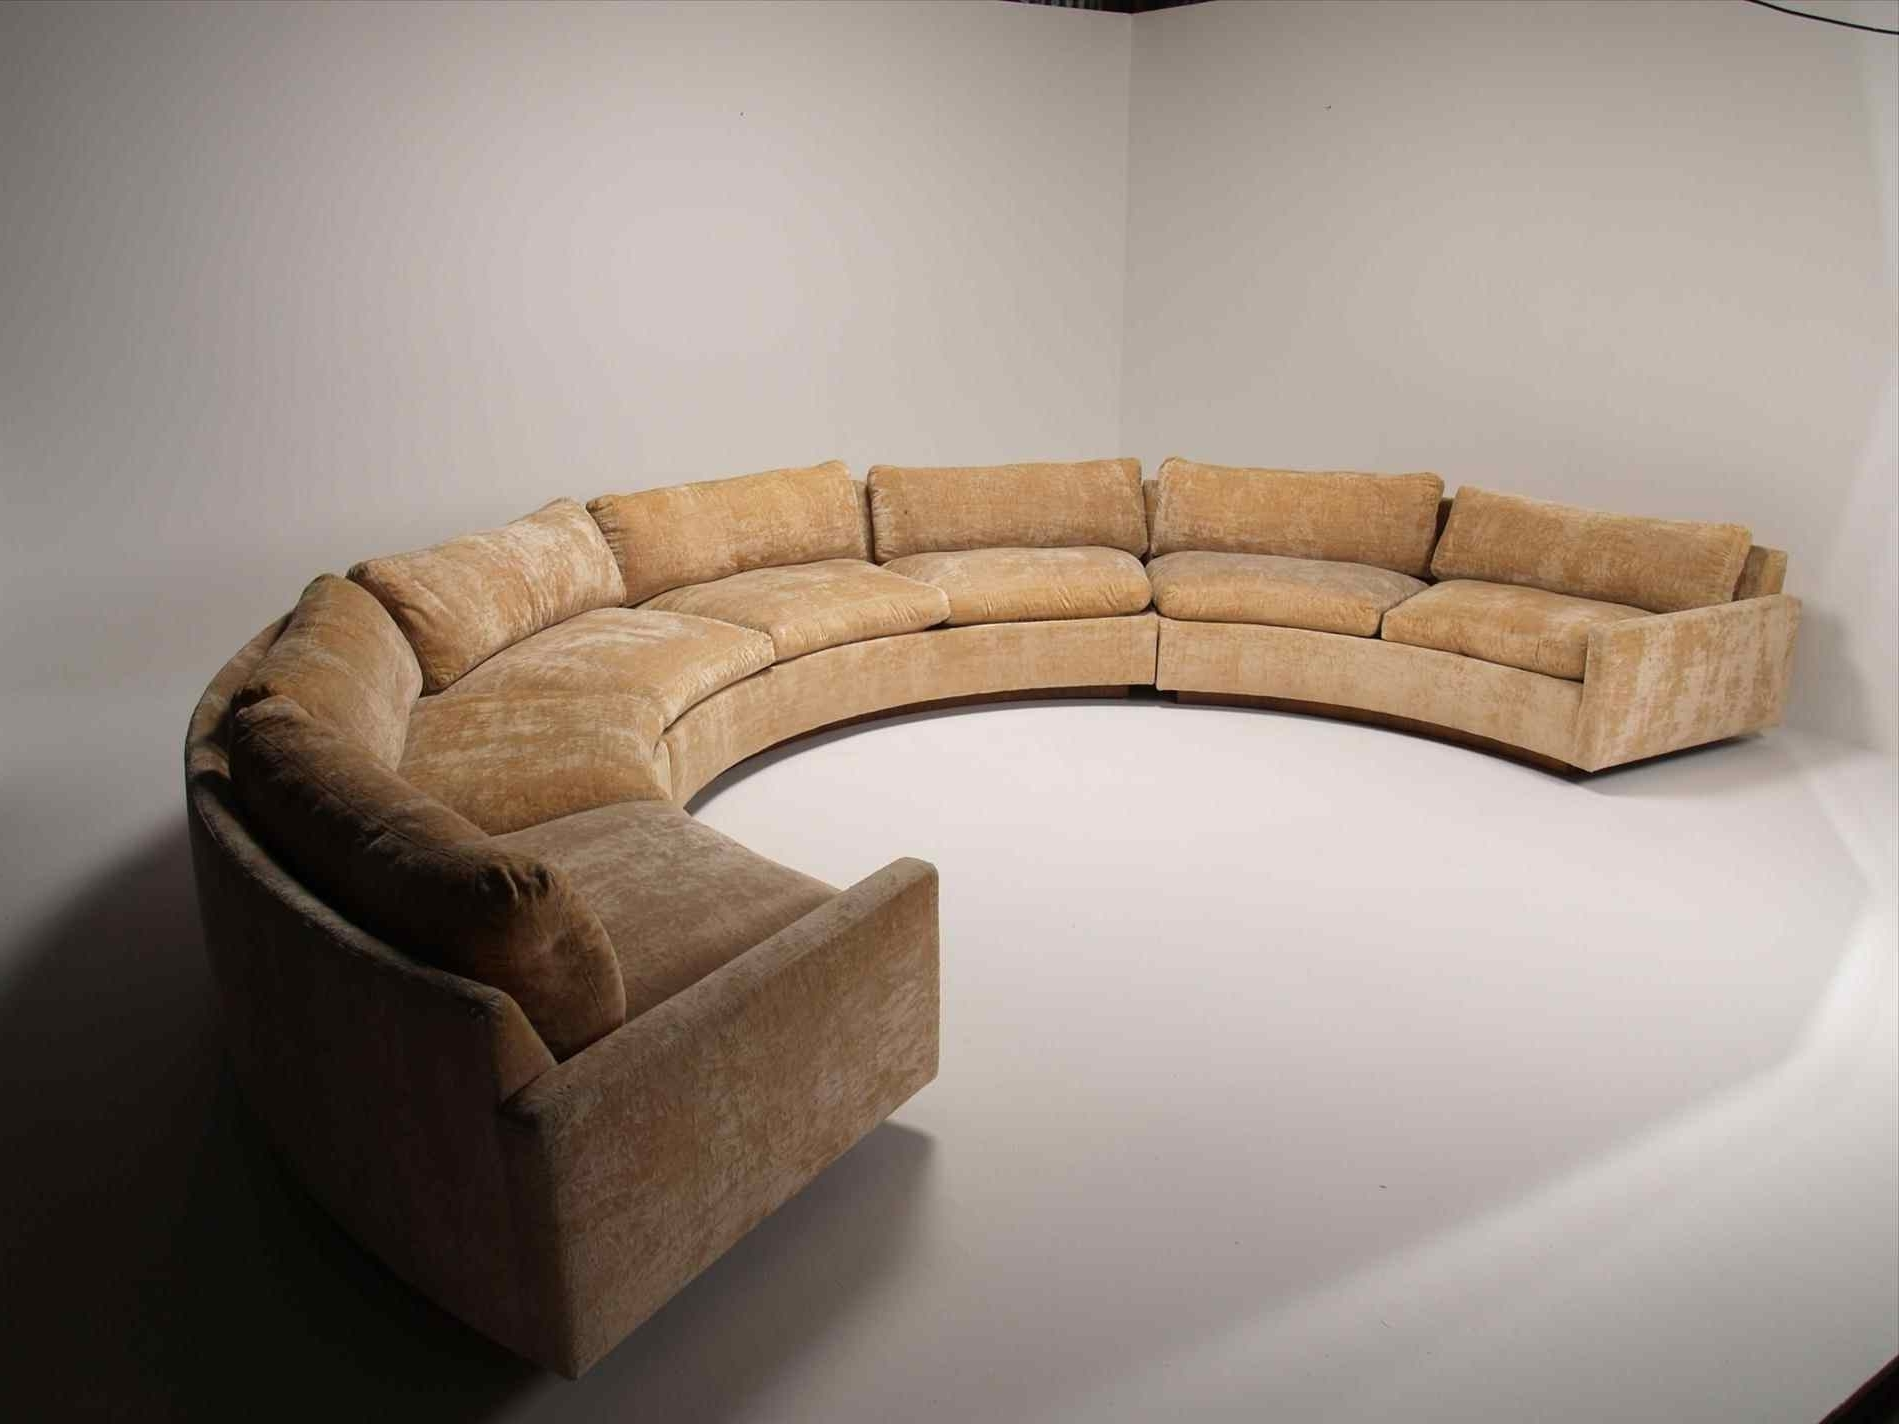 Popular Couch : Ideas Sofascom Loveseat Circle Couch Best Sofas Ideas Regarding Circle Sofas (View 12 of 15)